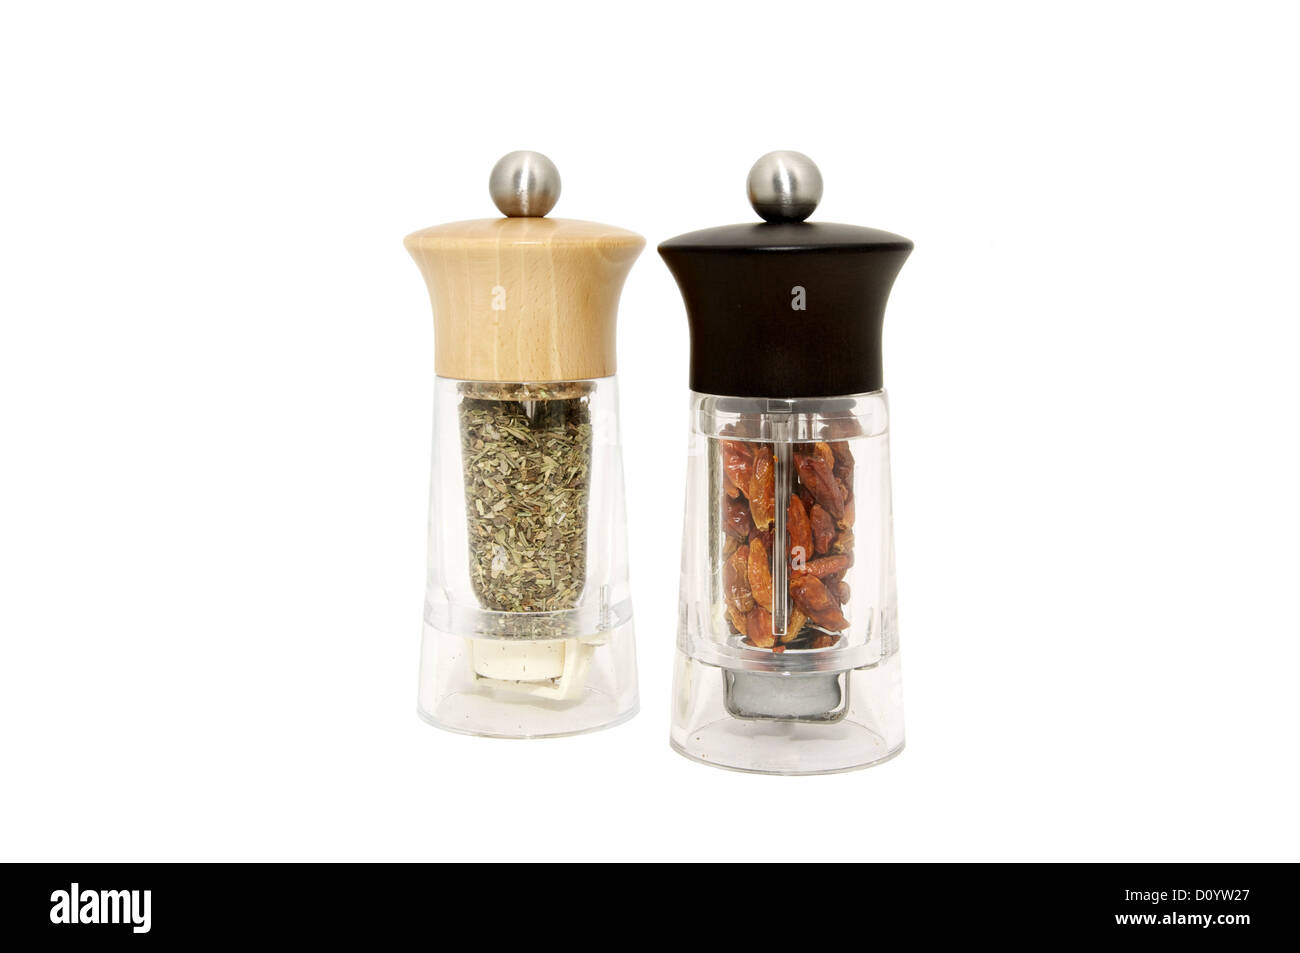 two mills for the spice - Stock Image